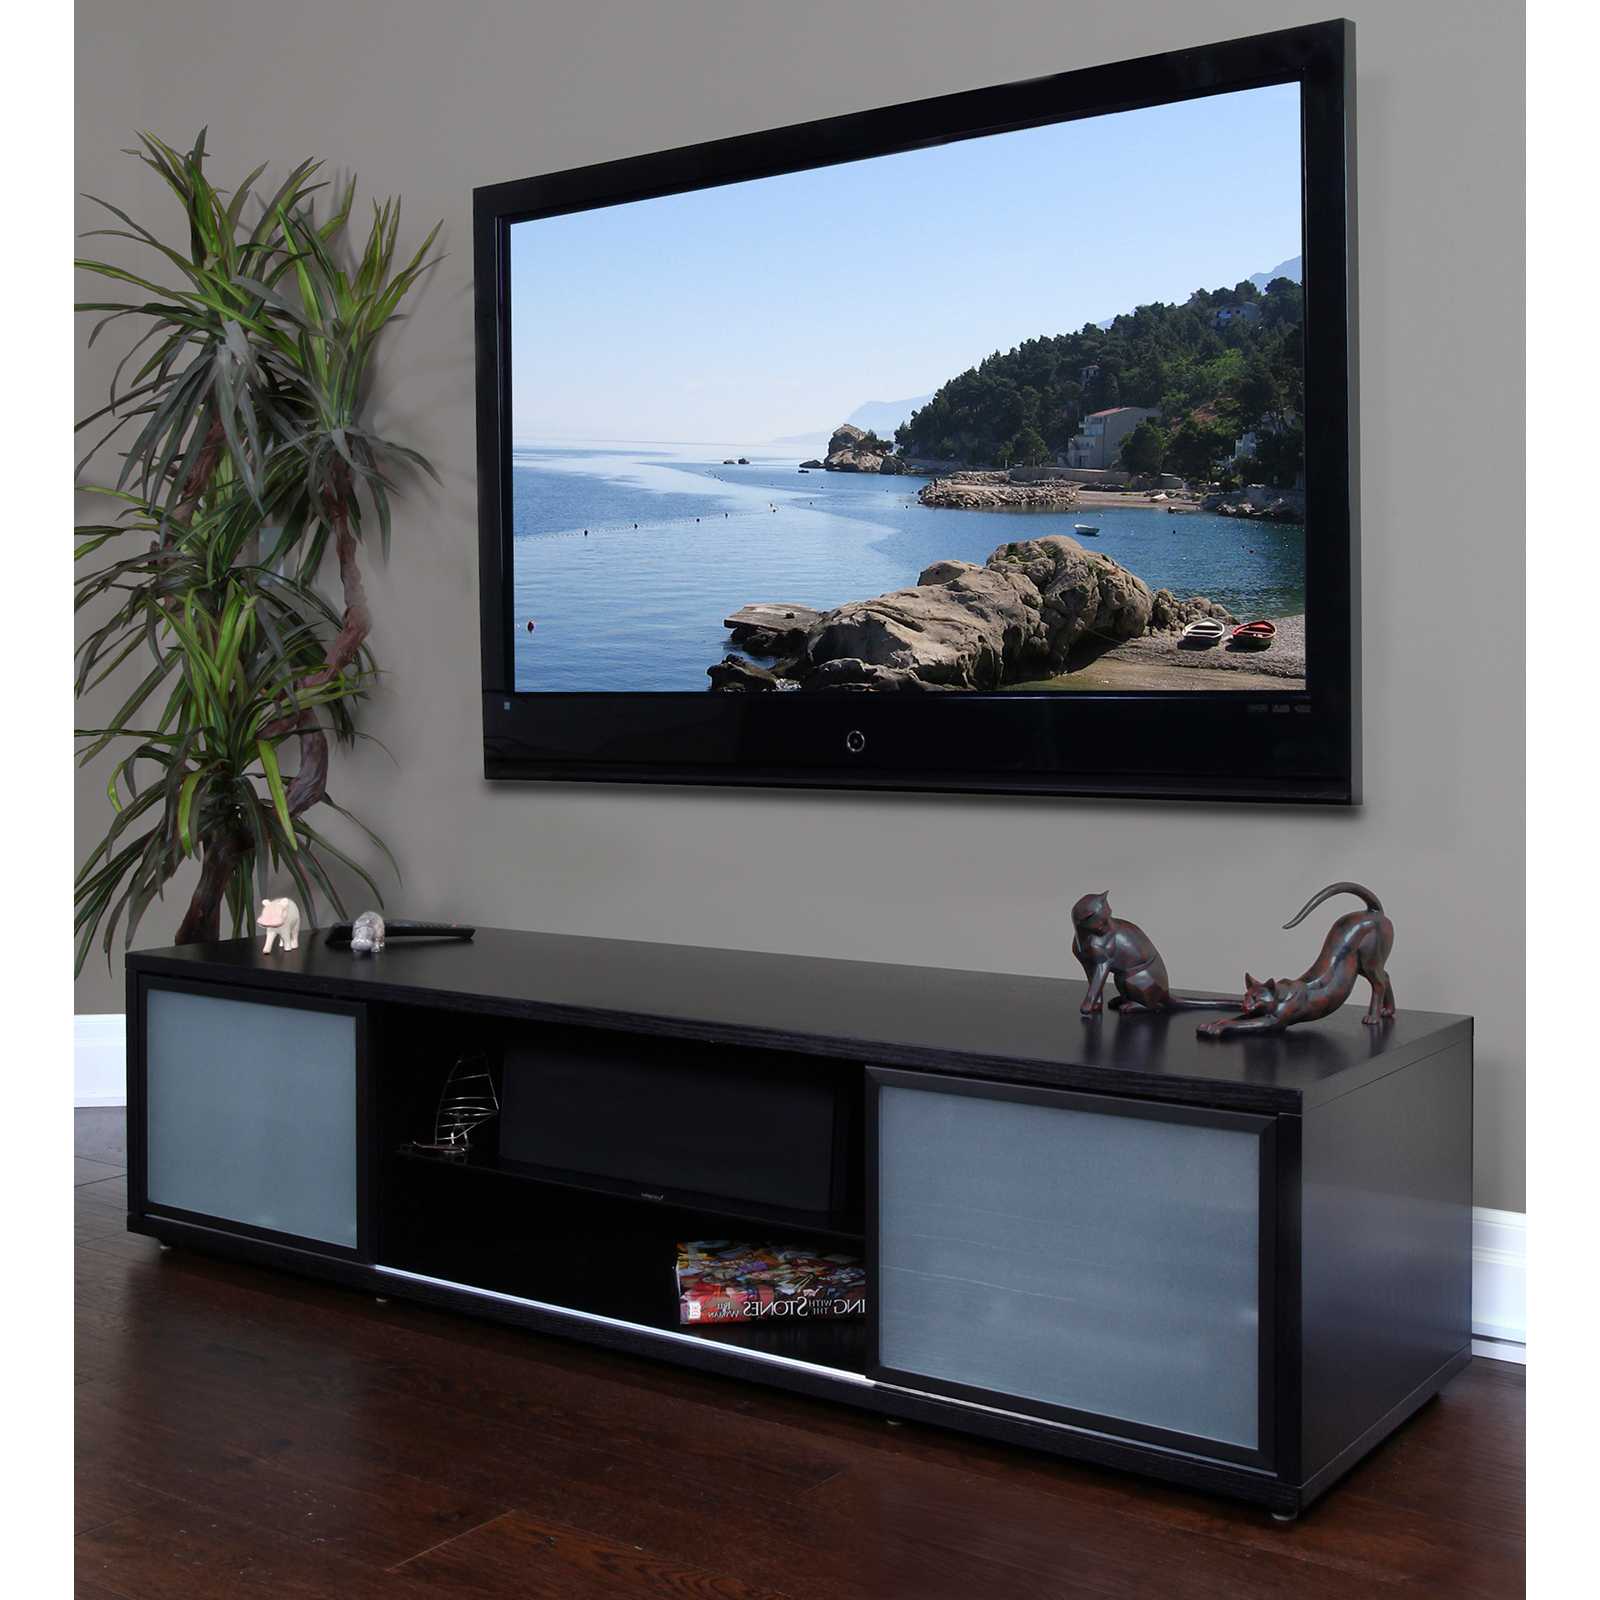 Plateau Srv Series 75 Inch Tv Stand In Black – Do Not Use Throughout Orsen Wide Tv Stands (View 2 of 20)